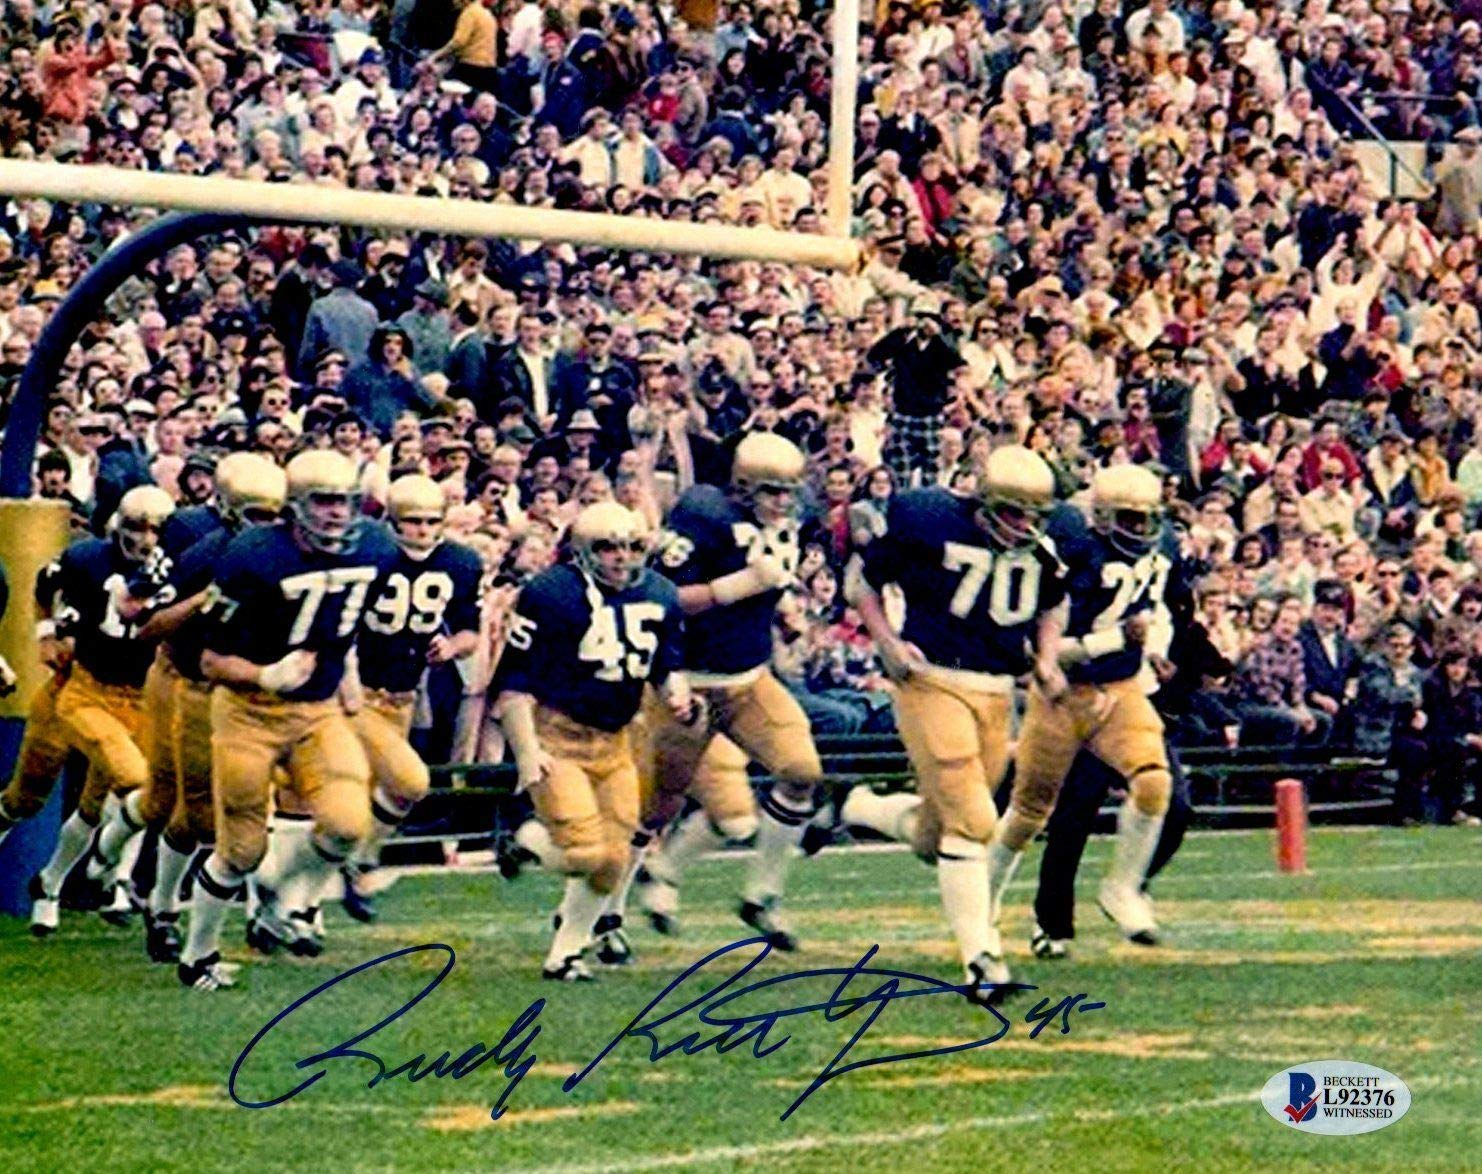 Beckett BAS Rudy Ruettiger Autographed Signed Notre Dame 8x10 Photo Running On Field